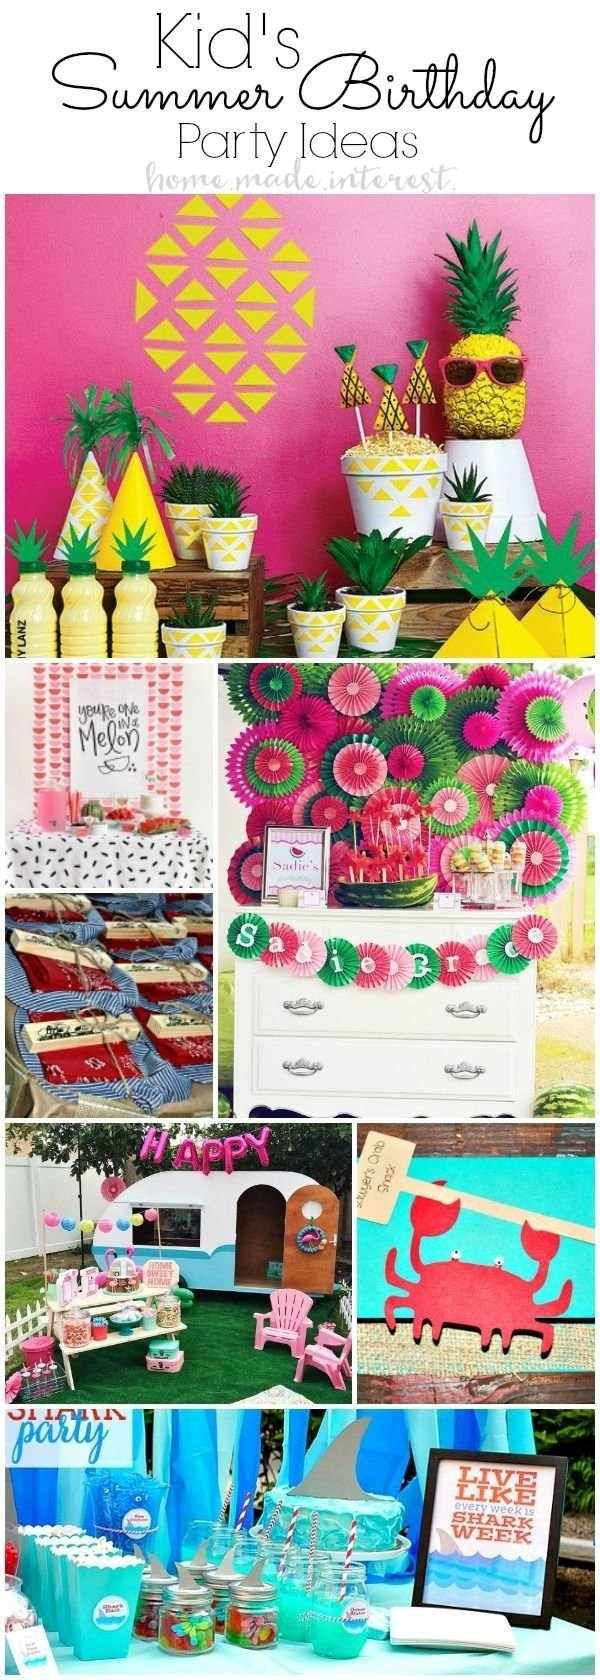 10 Elegant Birthday Ideas For 8 Year Old Daughter 257 Best Real Birthdays Images